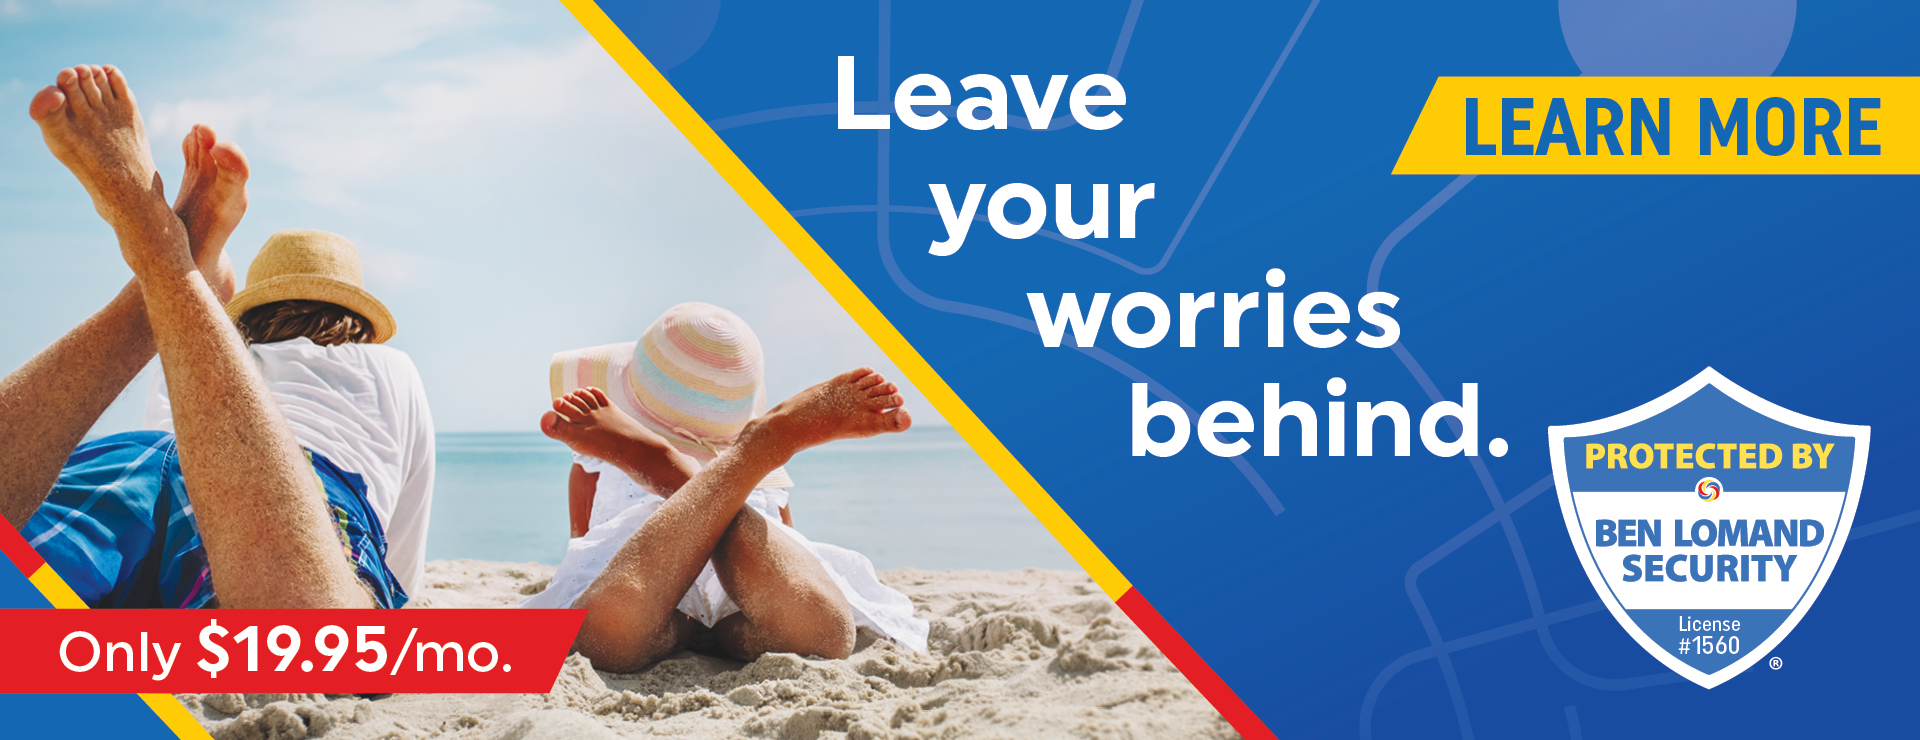 Leave your worries behind. Only $19.95 per month. Learn more. Security badge sticker reads: Protected by Ben Lomand Security, License number 1560.